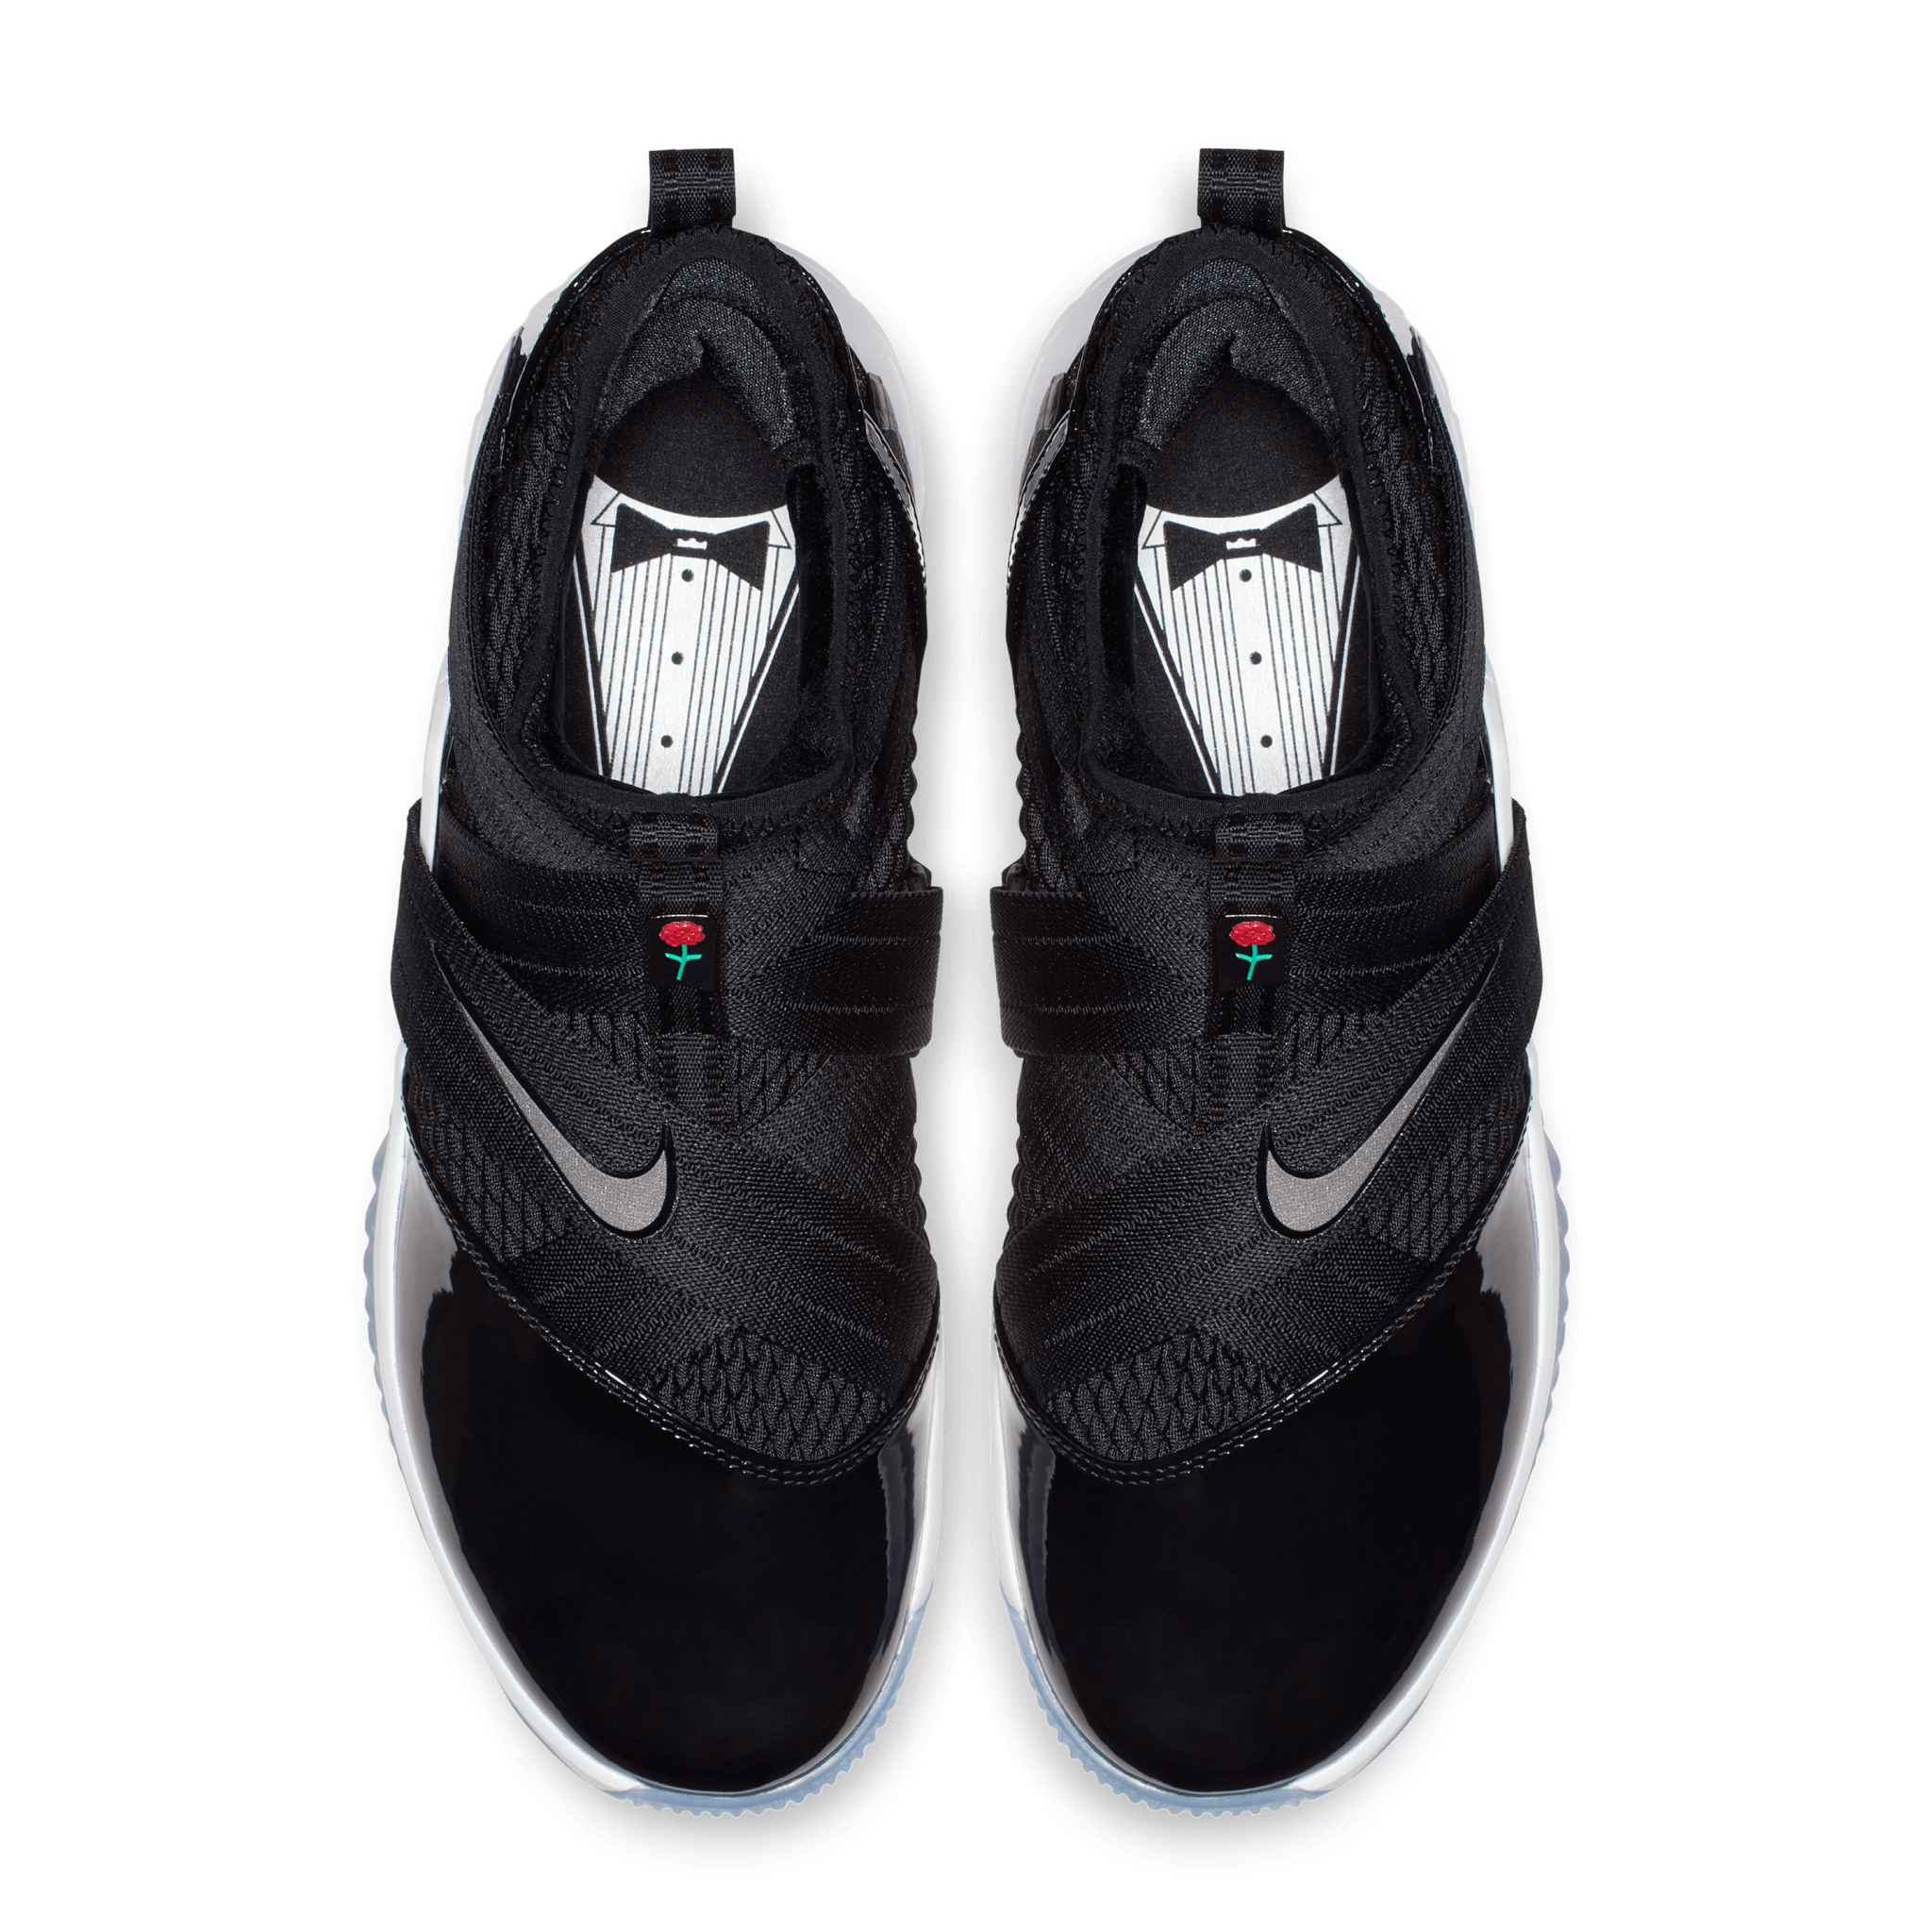 competitive price 1a315 62012 Nike Lebron Soldier 12 4